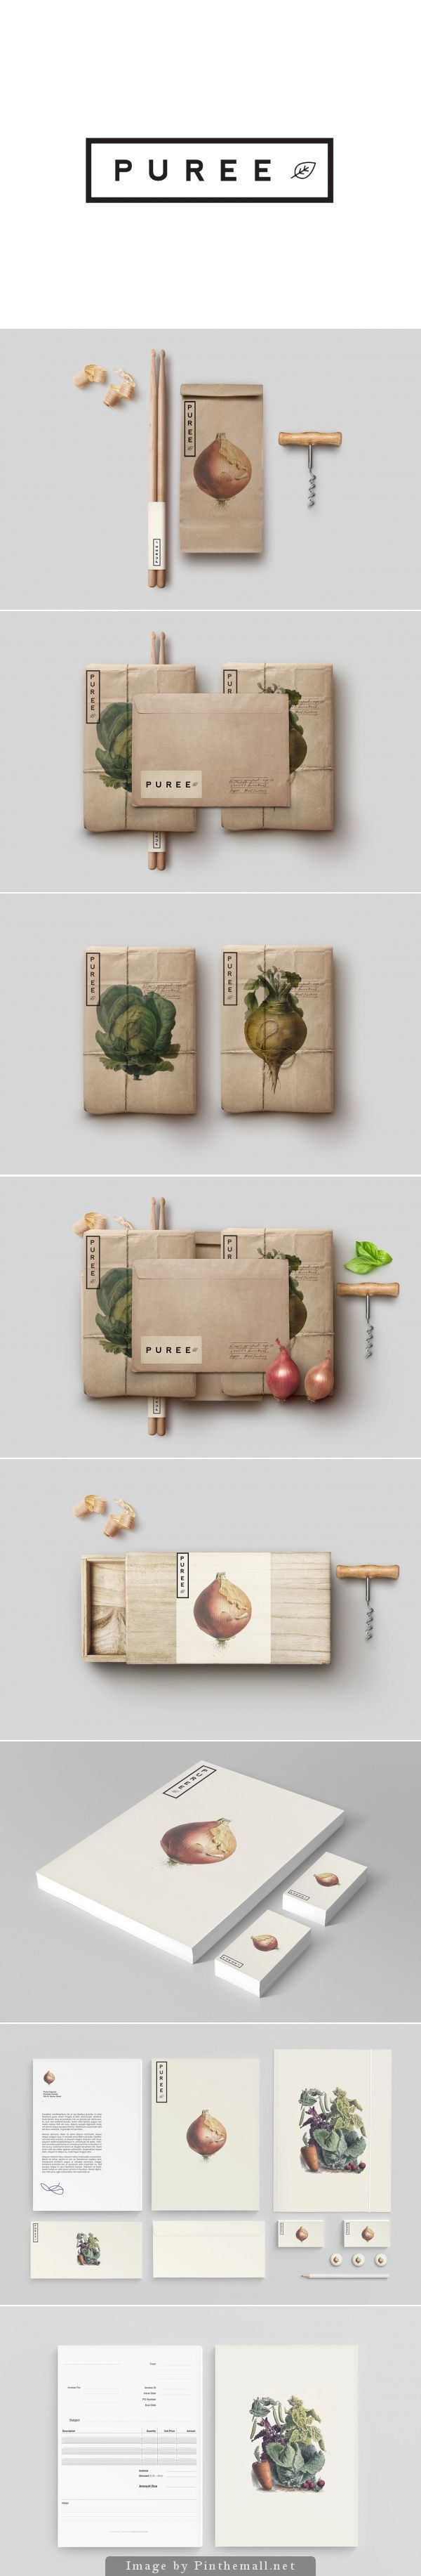 Dinners in 40 Minutes or Less Inspiration graphique : 25 packagings originaux et innovants à découvrir | BlogDuWebdesignInspiration graphique : 25 packagings originaux et innovants à découvrir | BlogDuWebdesign